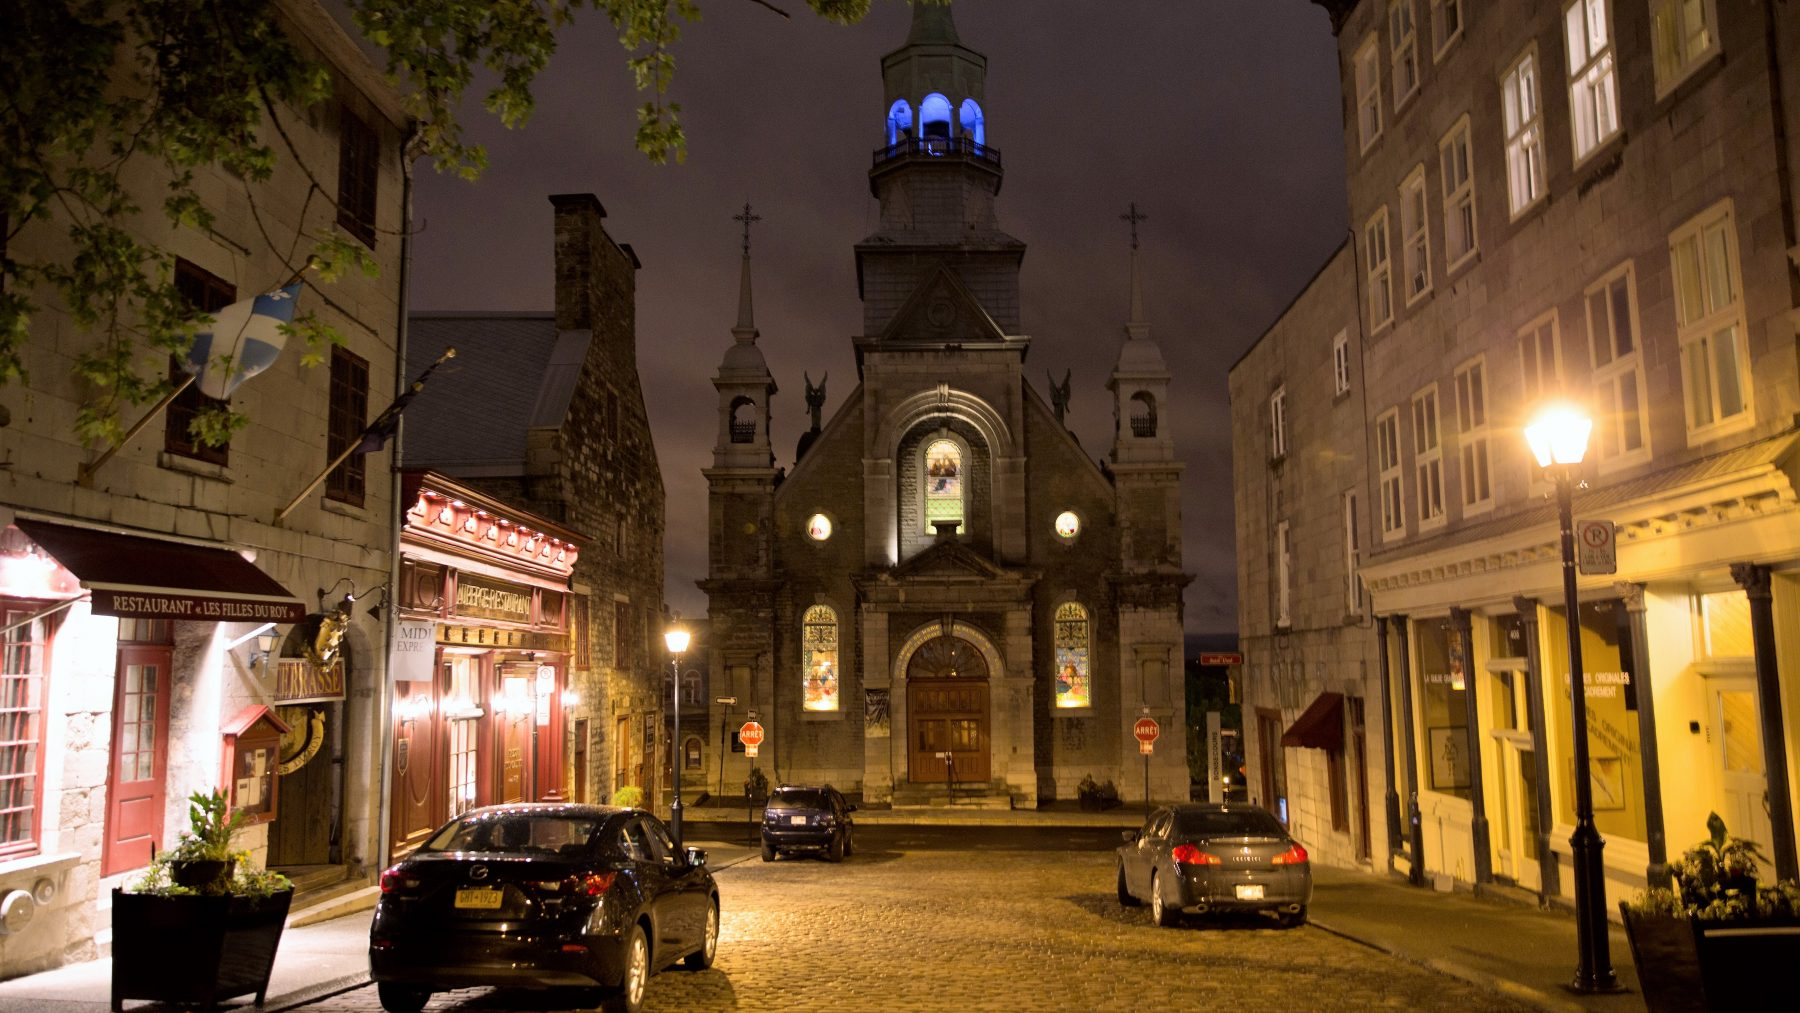 Street of cars and shops at night with a church at the end of the street, at dusk